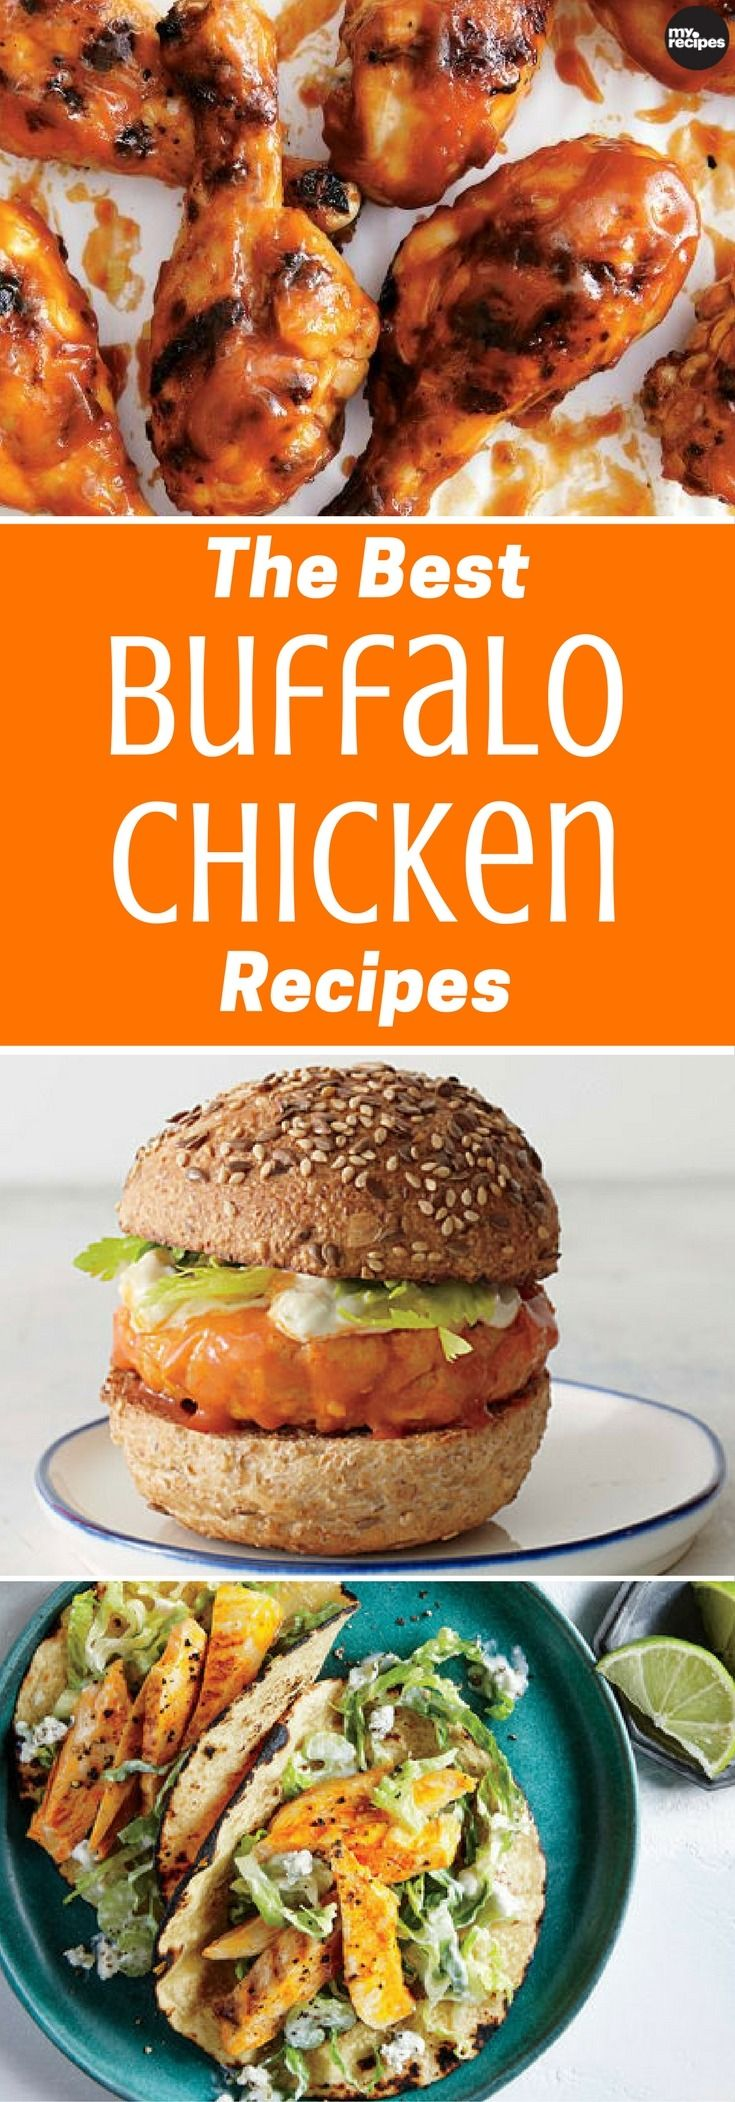 Buffalo Chicken is traditionally nothing more than deep-fried chicken wings tossed with hot sauce and butter. However, while wings are great (as you'll see), there's more to Buffalo Chicken than its bar chow origins suggest. The crowd-pleasing rich and warming flavor profile lends itself to a whole host of dishes. From tacos to meatball sliders to five-ingredient pizza, here are the best recipes for when you want something that's a little saucy and a bit spicy.   MyRecipes